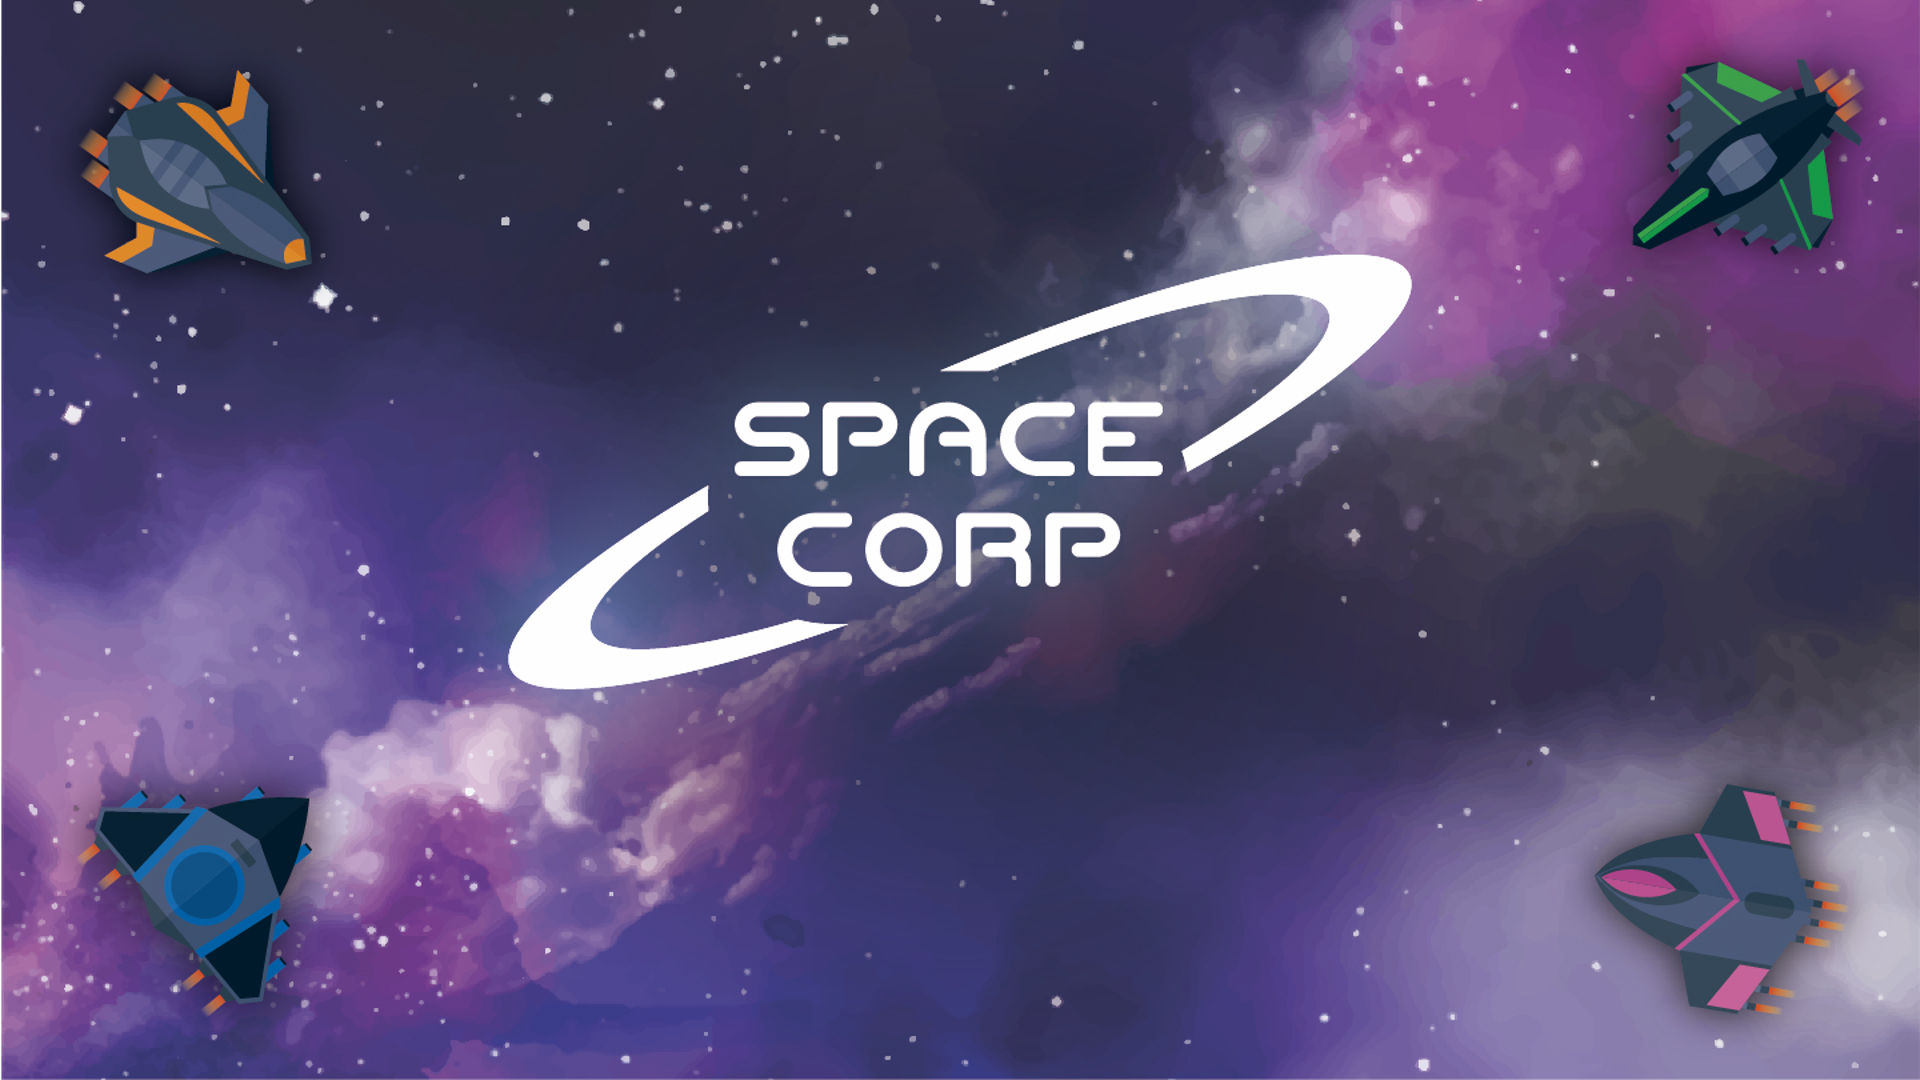 Space Corp